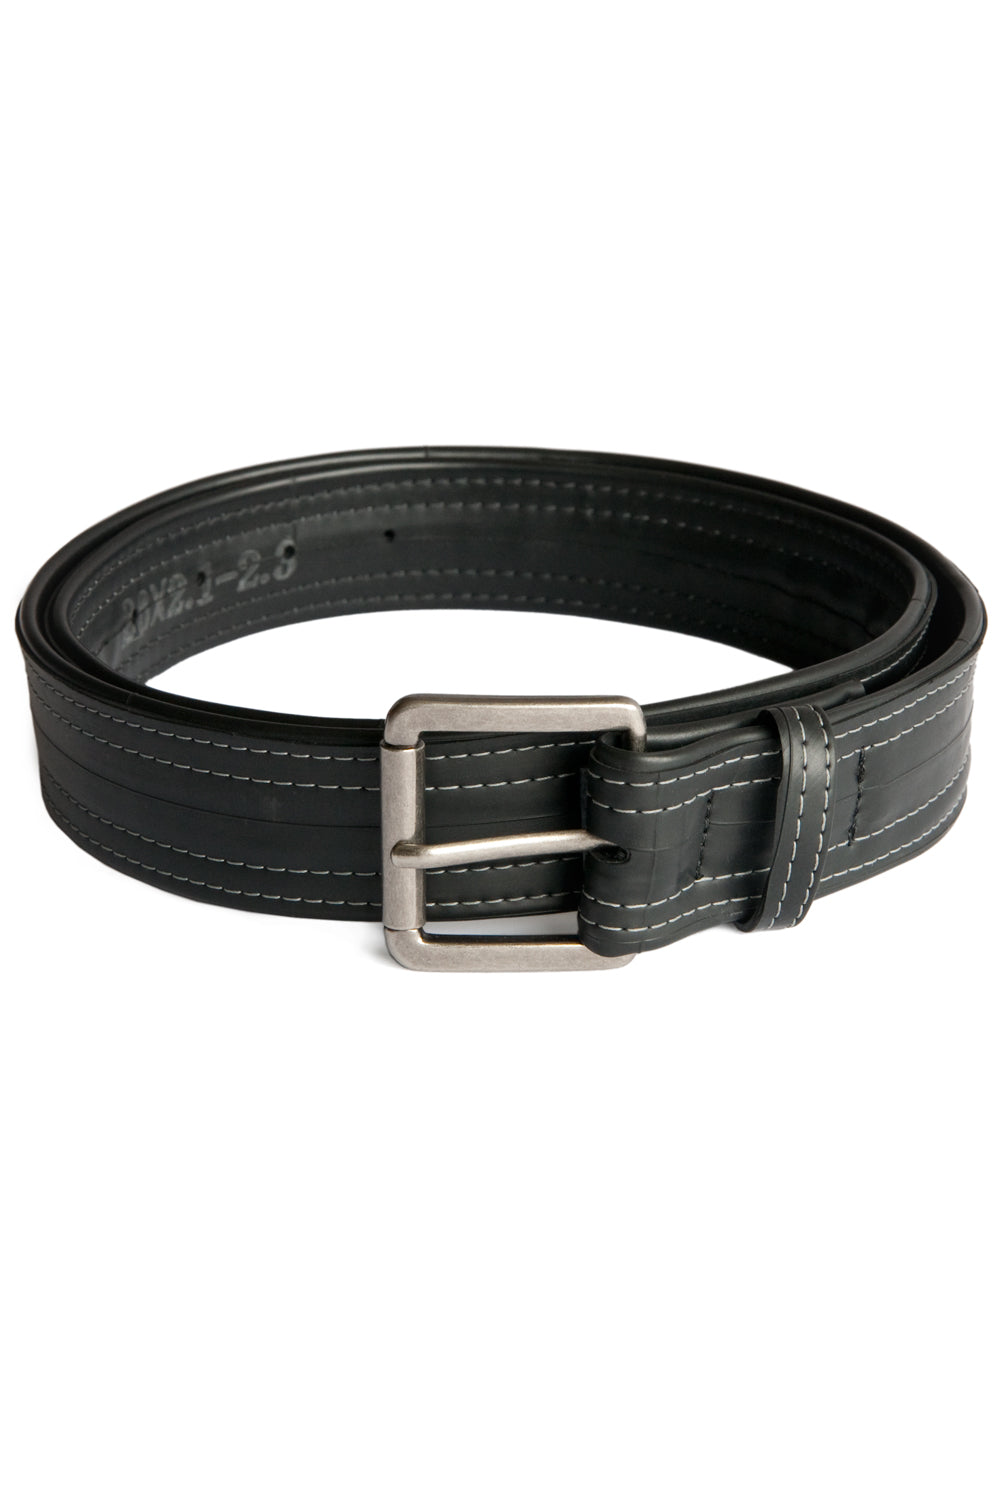 alchemy-goods-mens-usa-made-recycled-bike-tube-vegan-leather-belt